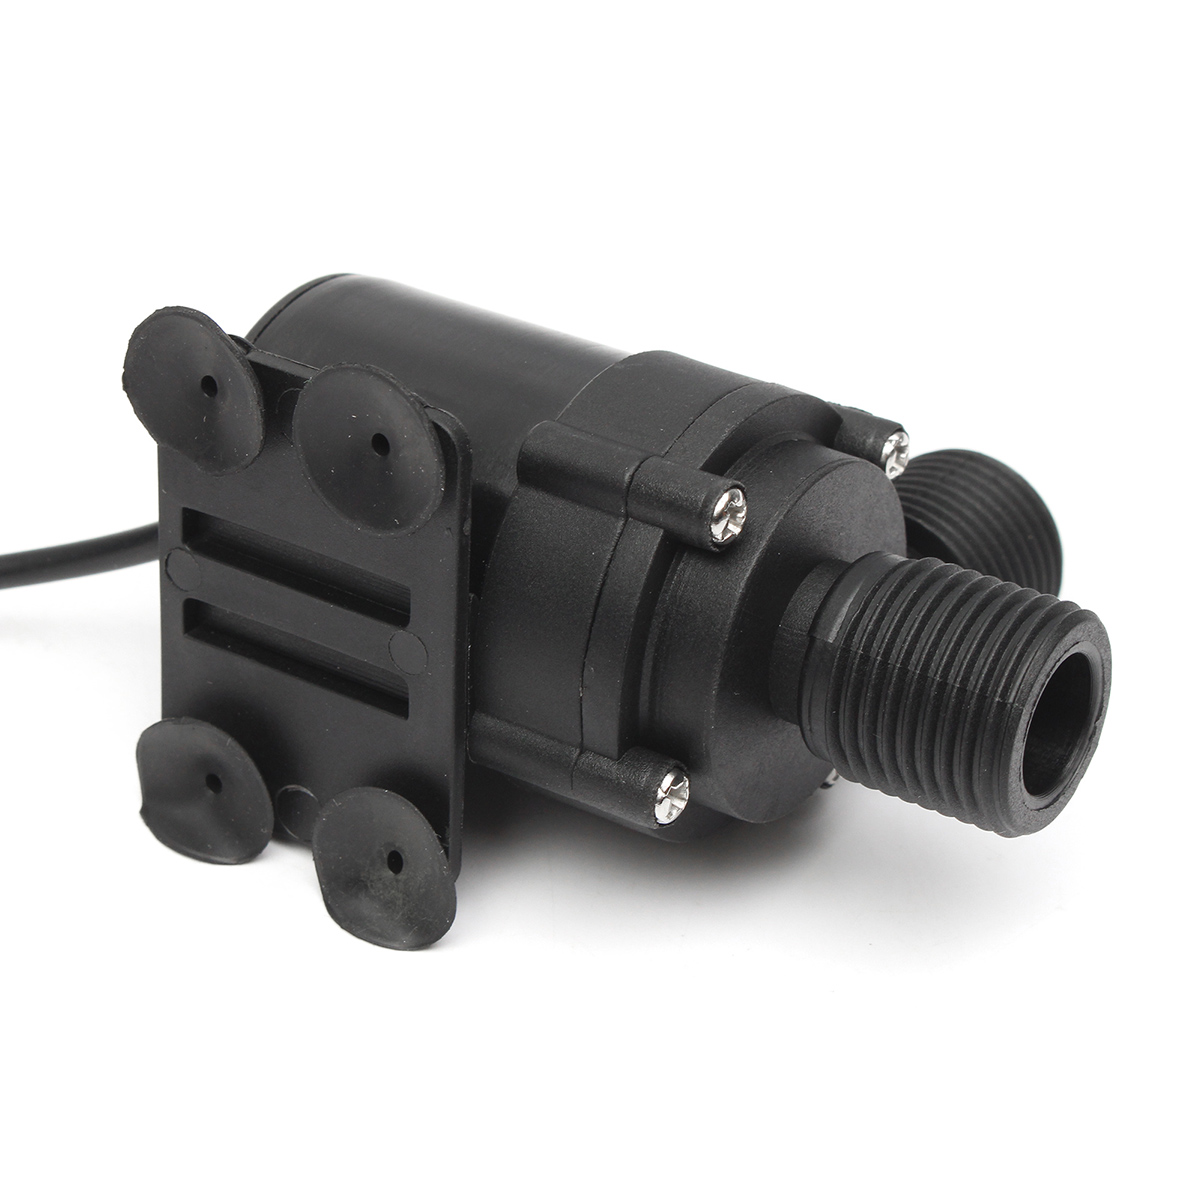 DC 12V Brushless Motor Electric Mini Submersible Water Pump Ultra Quiet Plastic